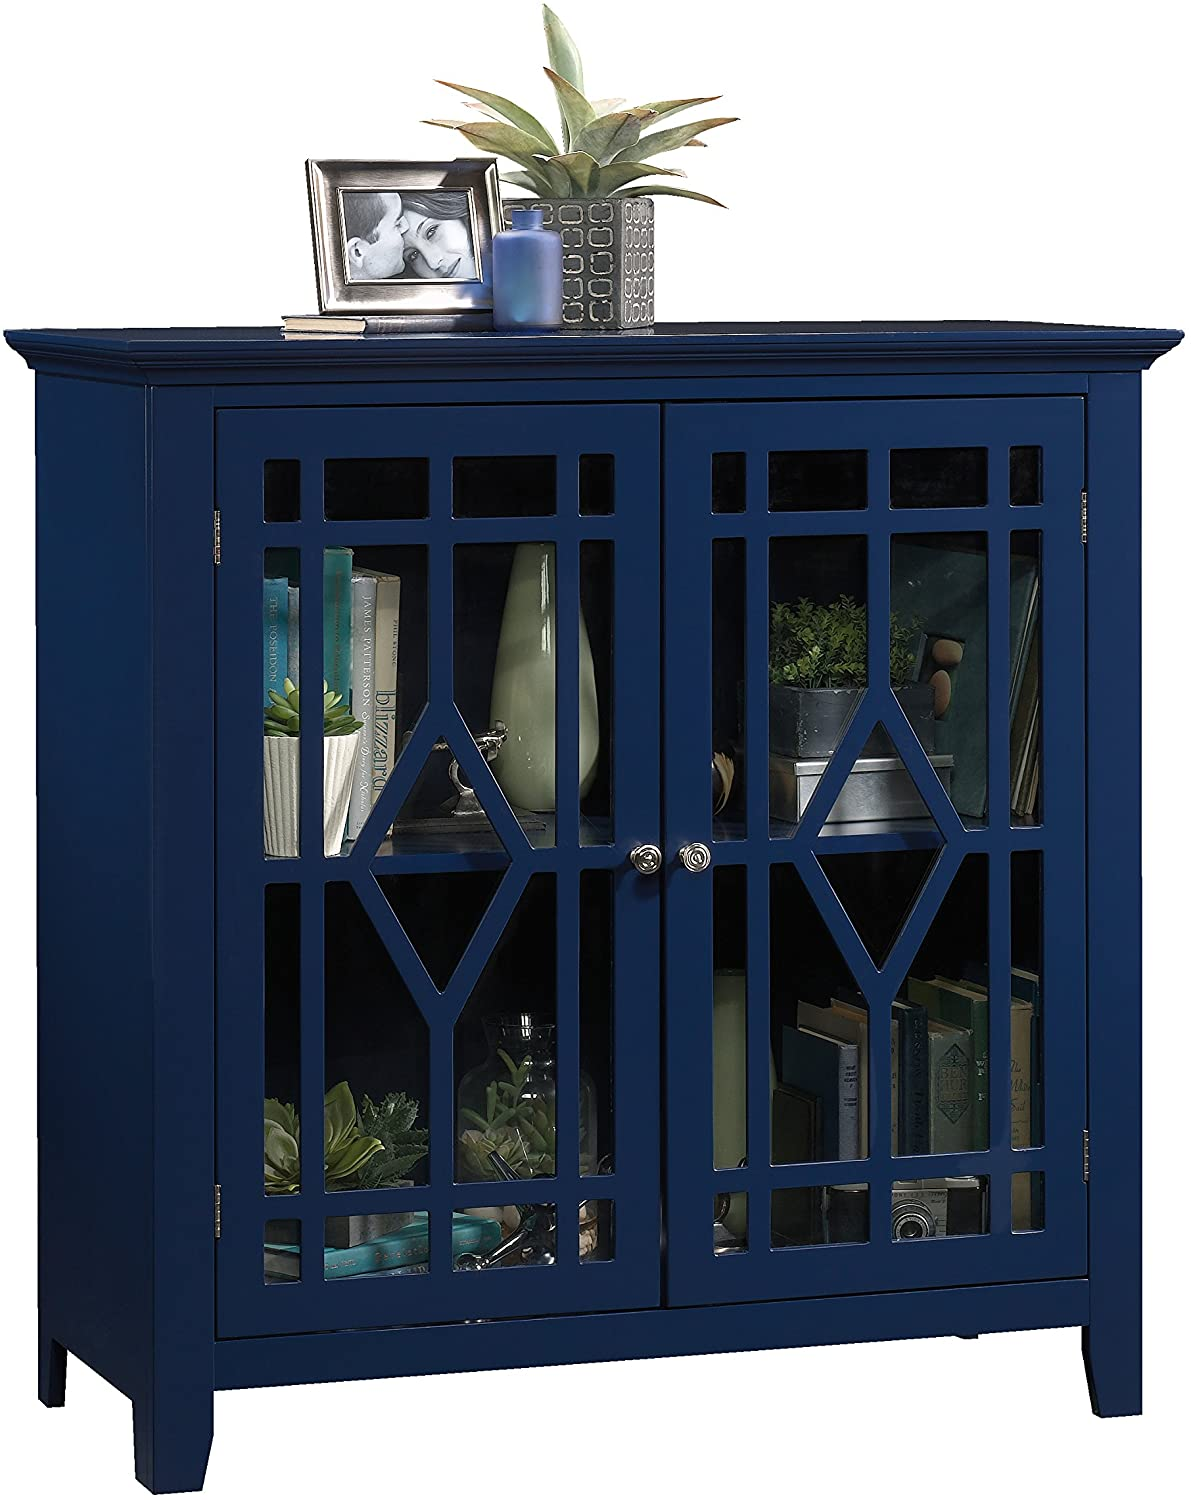 "Sauder 420128 Shoal Creek Display Cabinet, L: 35.98"" X W: 15.75"" X H: 35.95"", Indigo Blue finish"